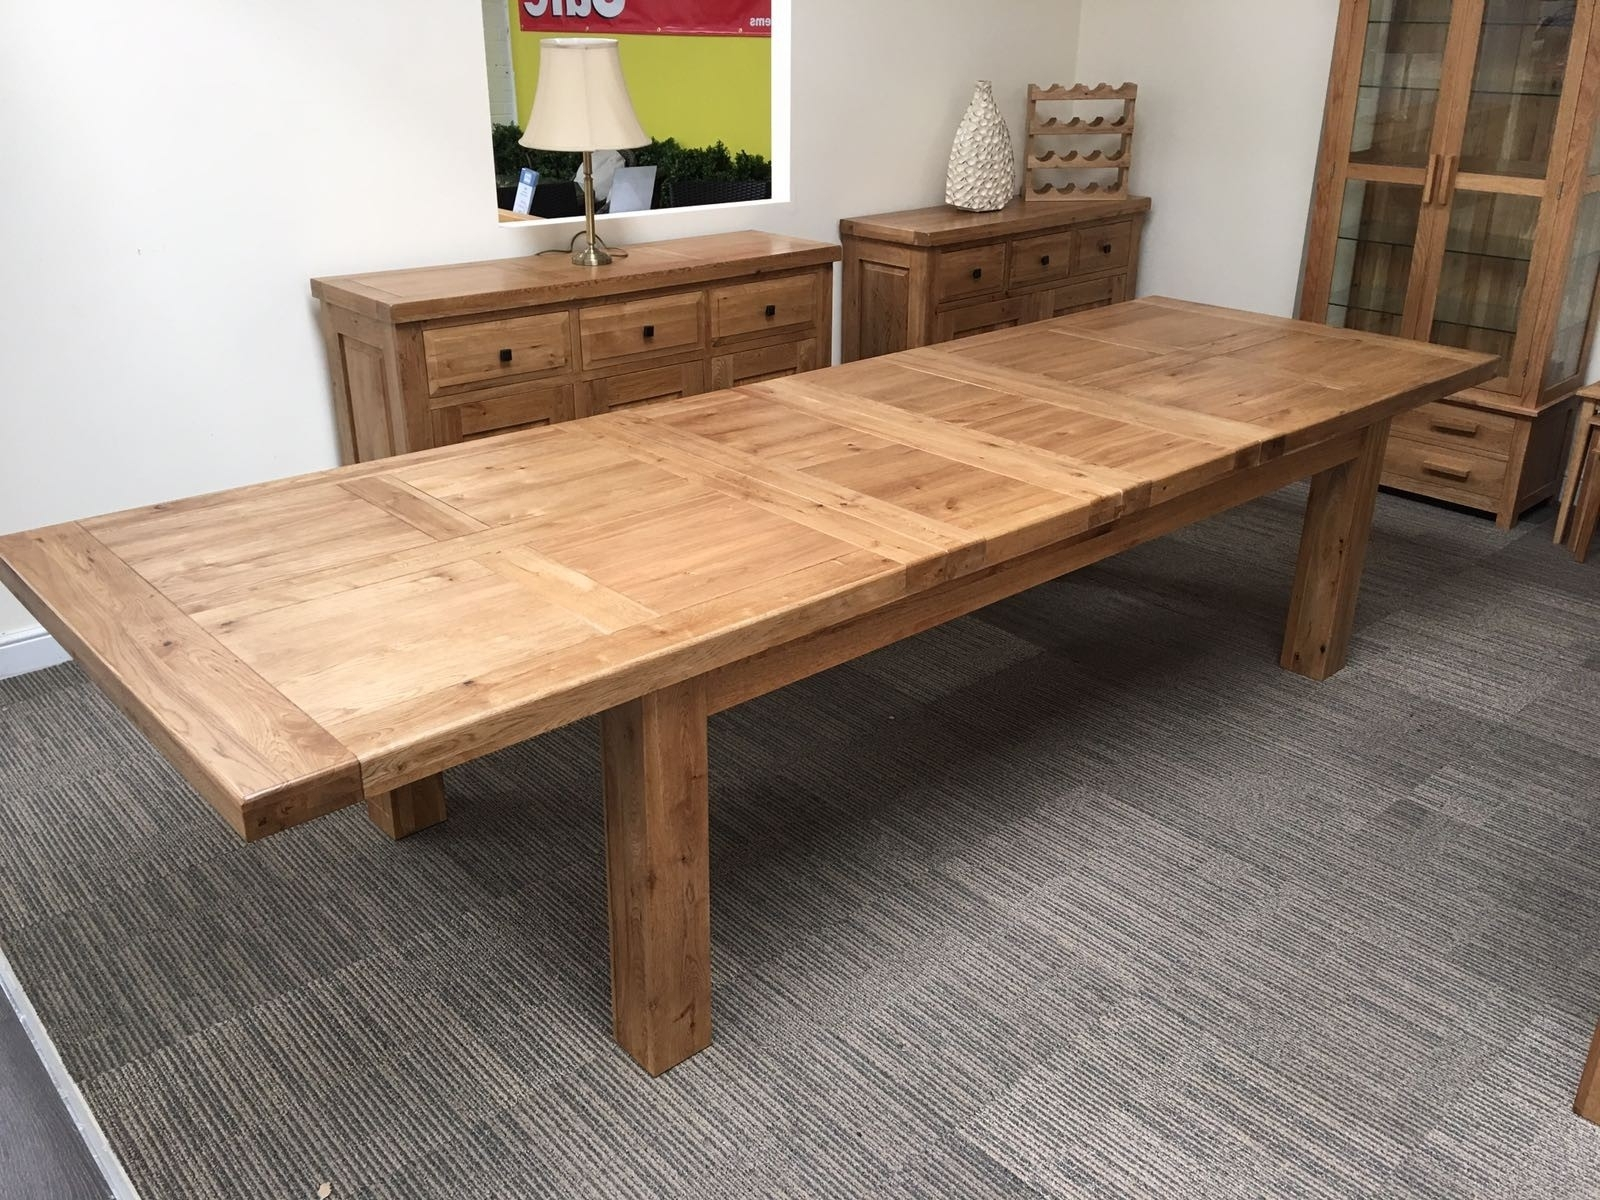 Oak Dining Furniture Regarding Most Recent Beautiful Oak Dining Table : Ugarelay – Ideas To Care Oak Dining Table (View 17 of 25)